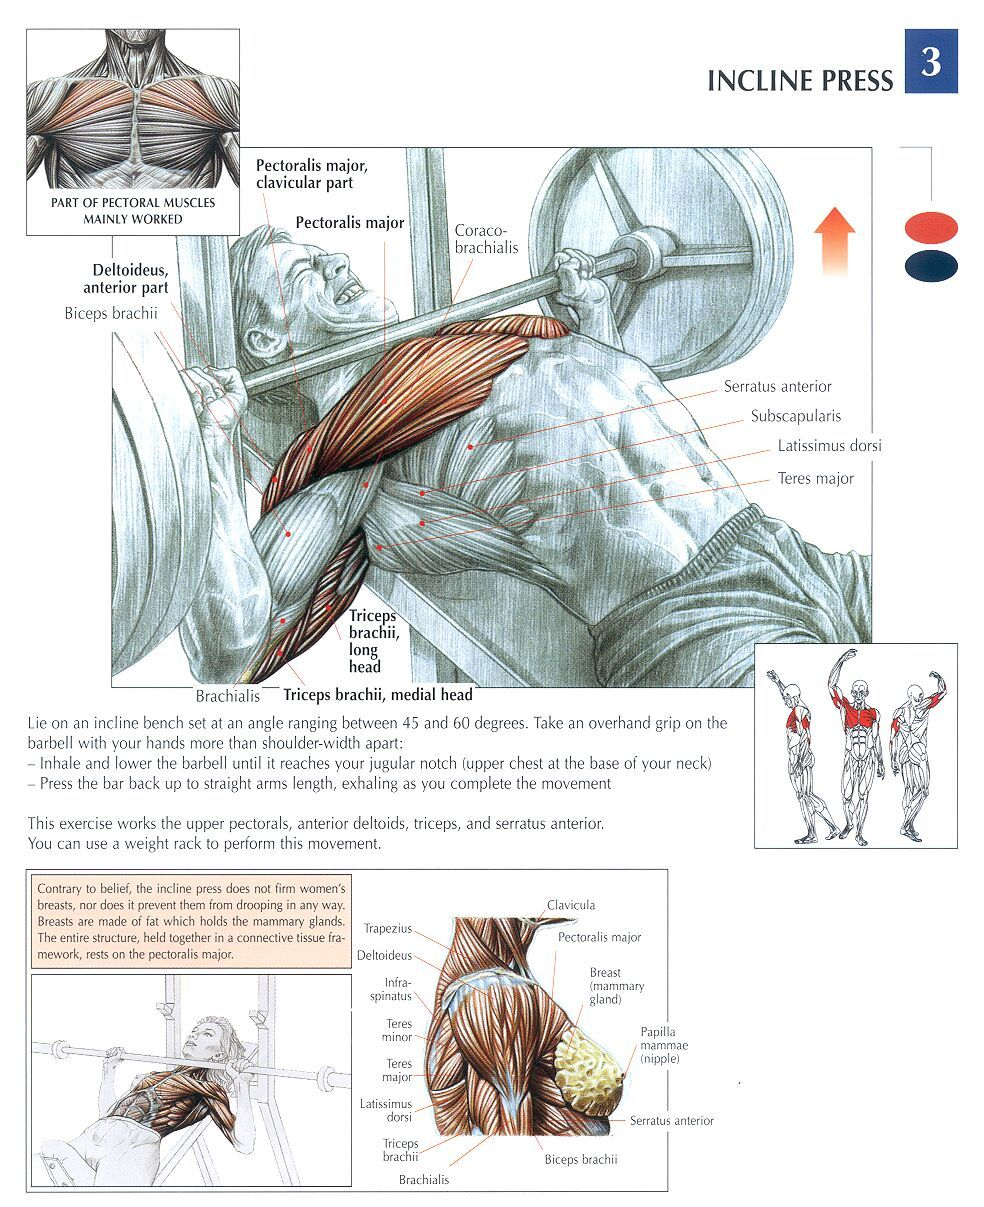 The most awesome images on the Internet | Anatomy, Exercises and Workout